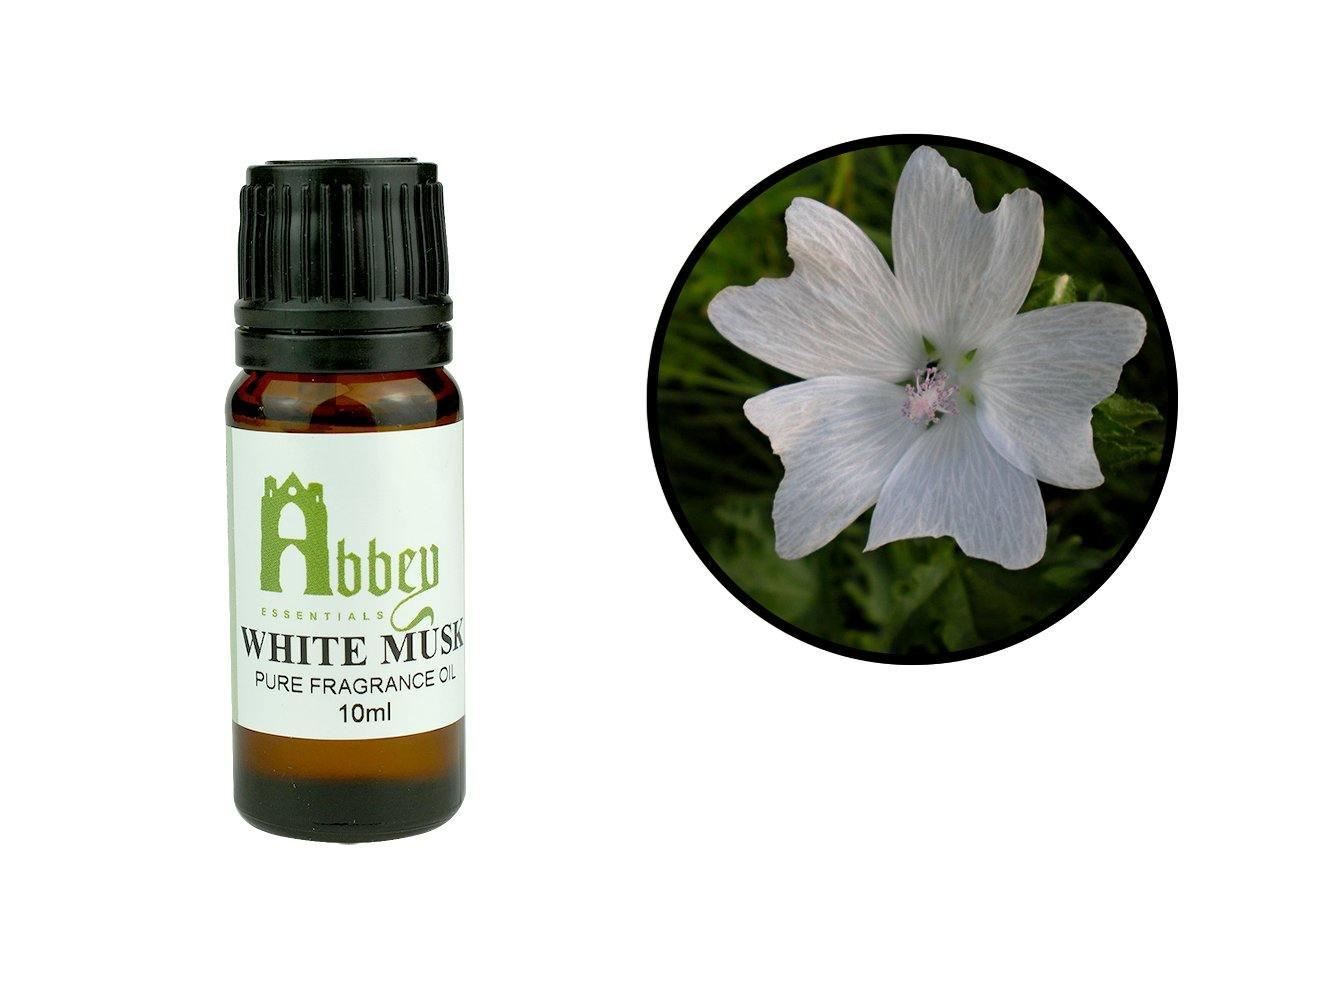 White Musk Fragrance 10ml